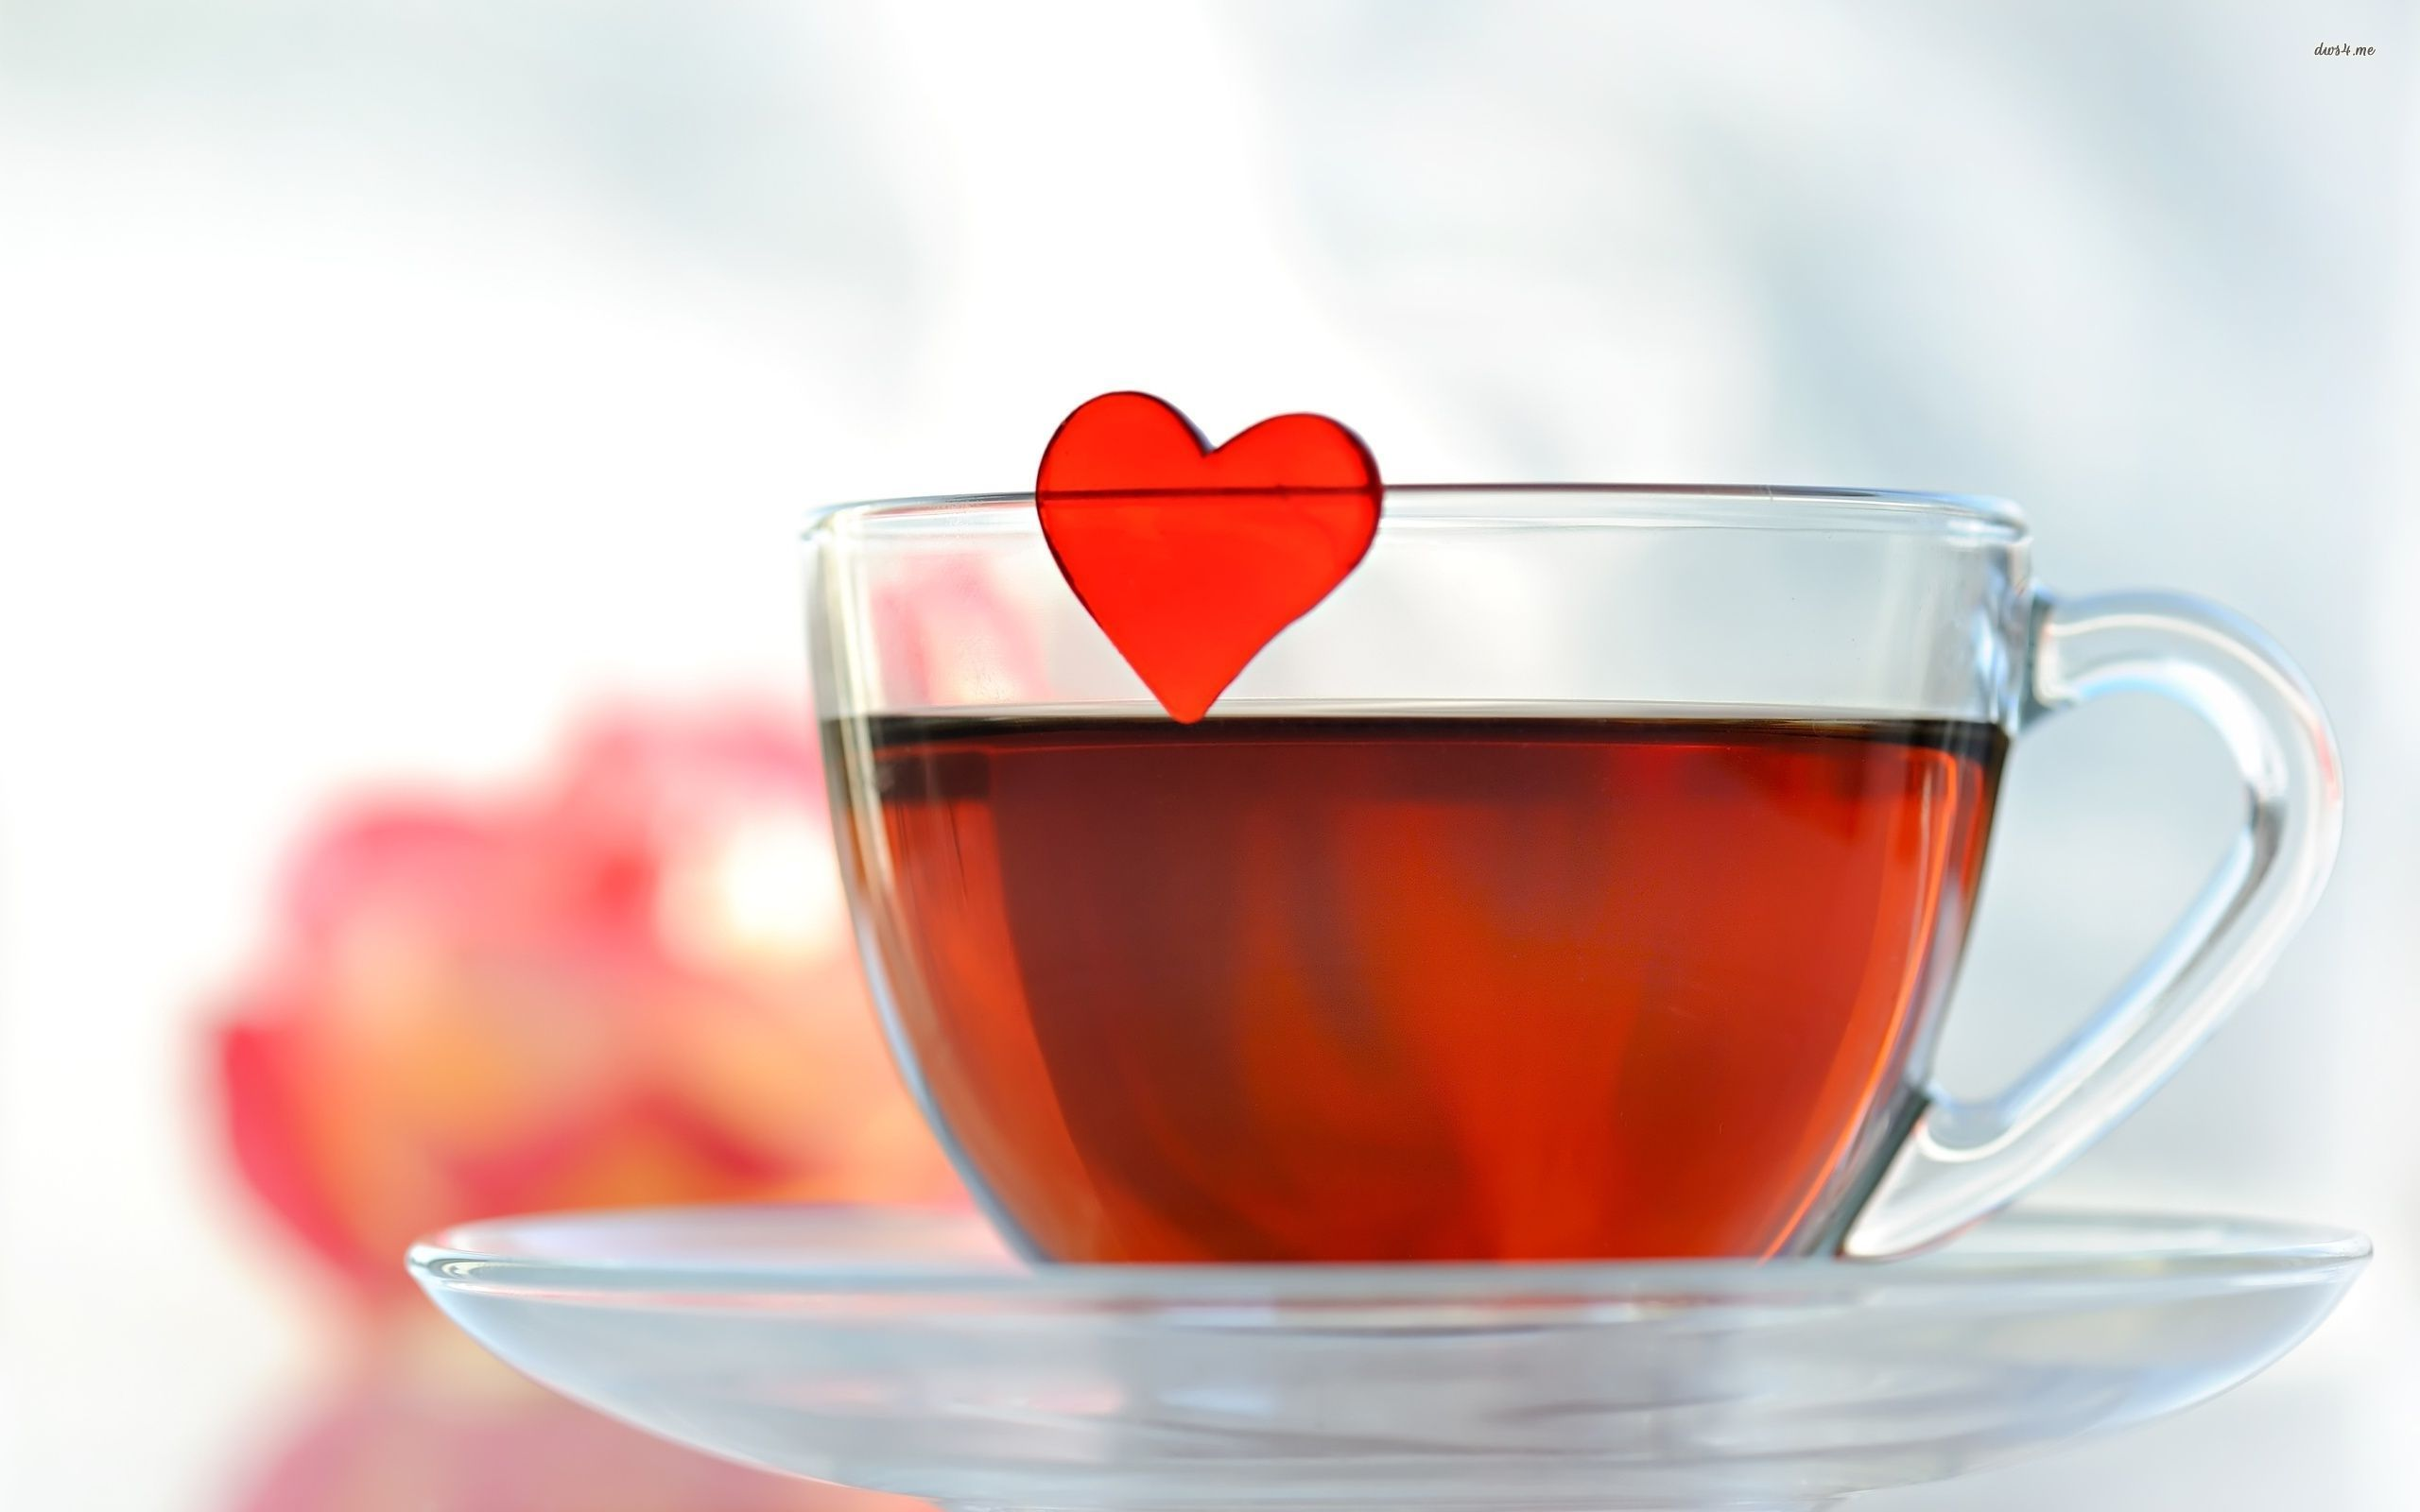 Lovely Tea Cup Wallpaper 42215 2560x1440 px